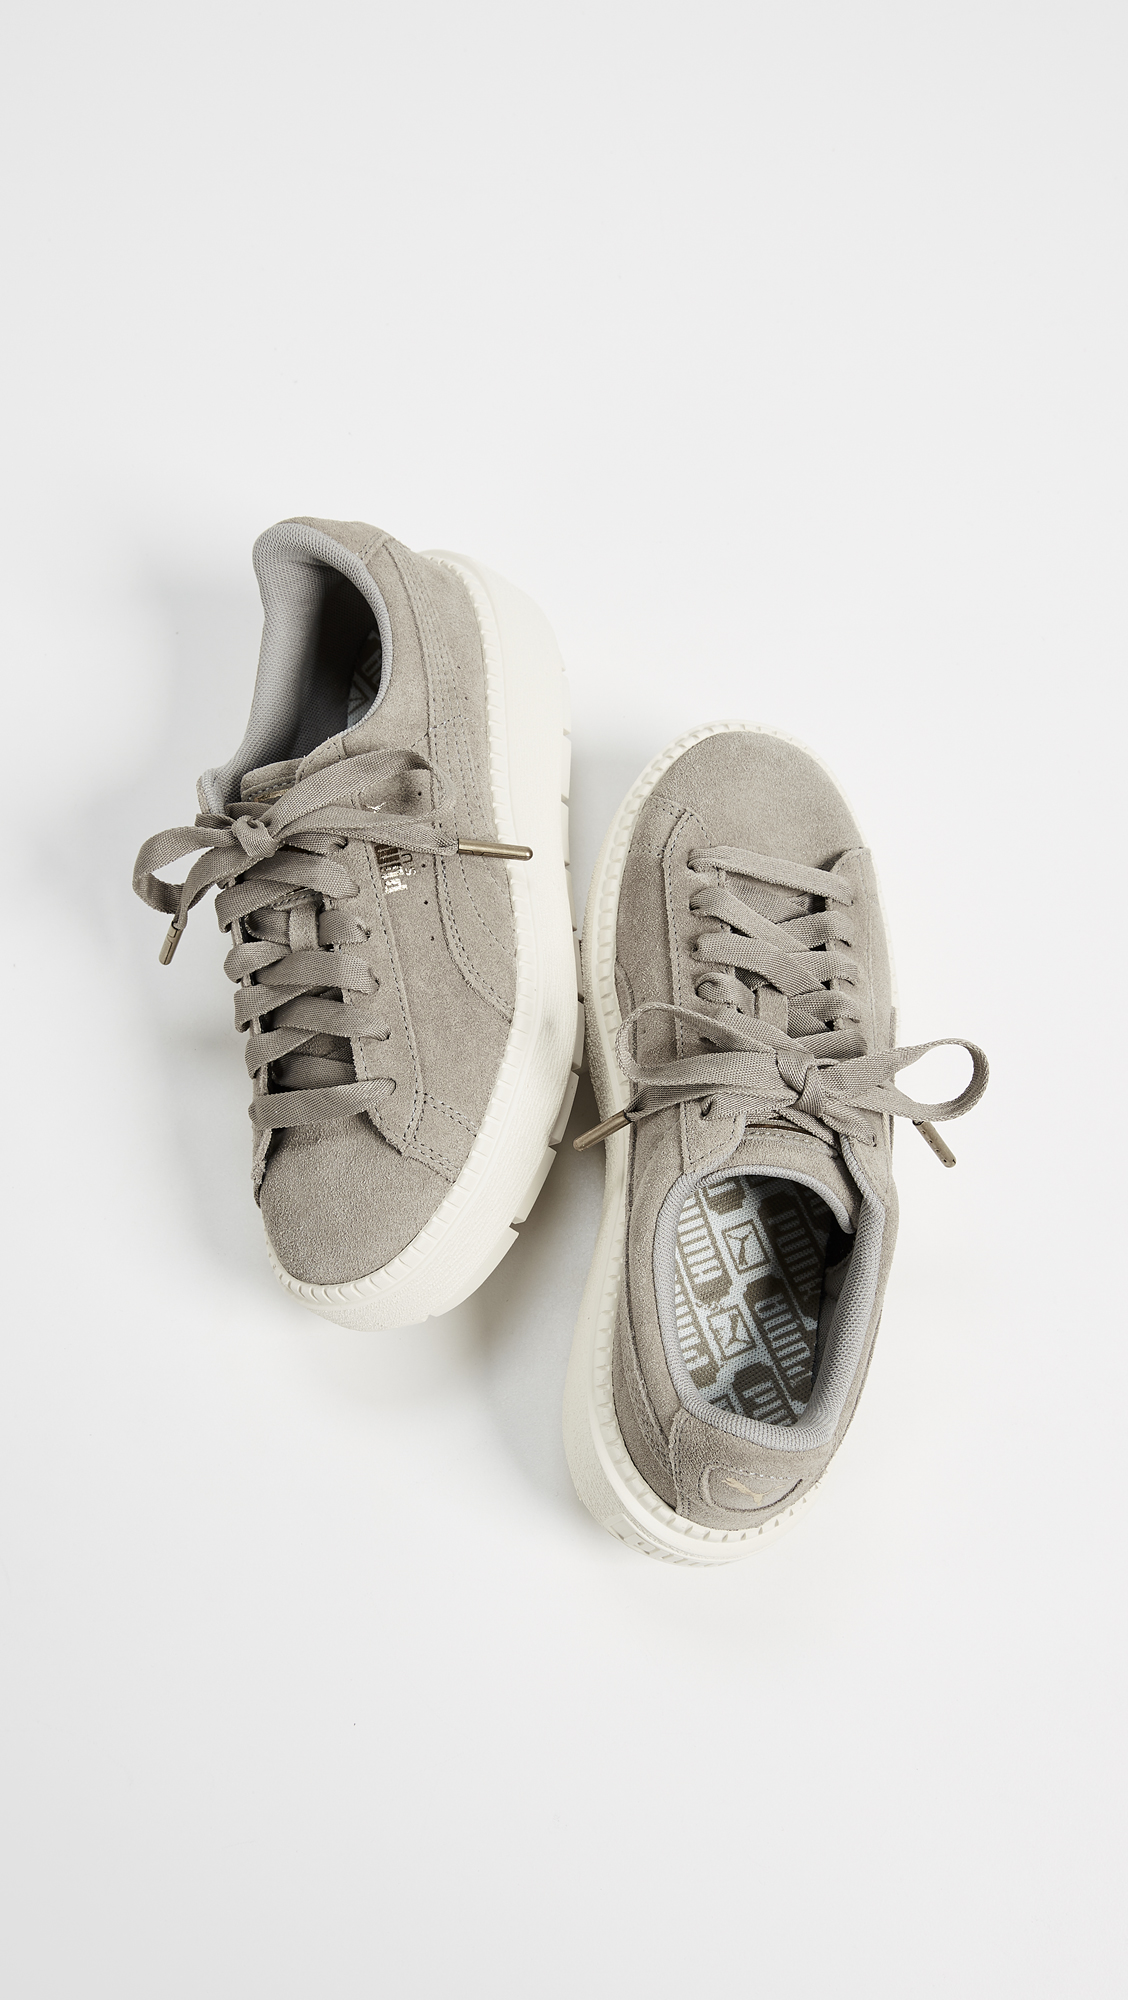 66031a3eacf PUMA Suede Platform Trace Sneakers